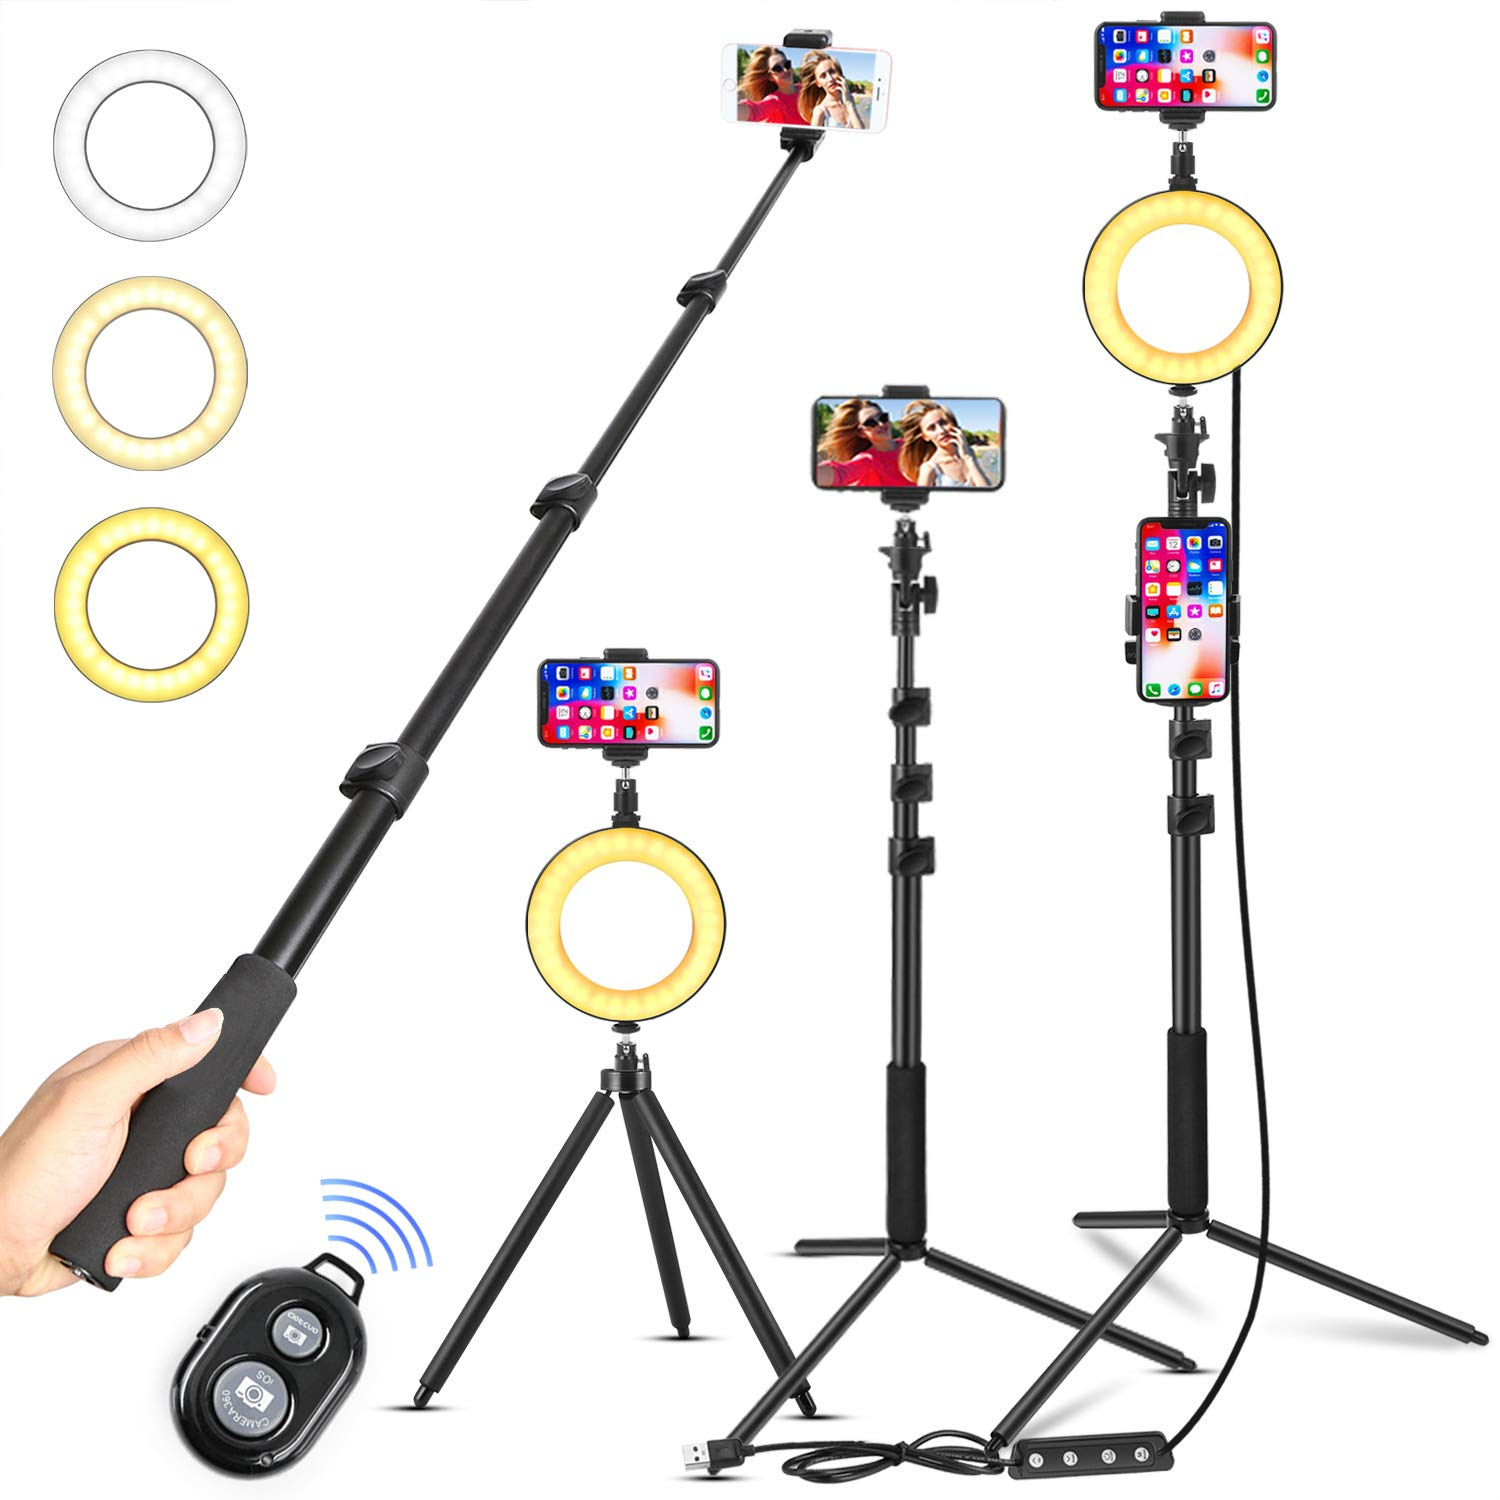 LED Dimmable Ring Light with Tripod Stand & Phone Holder for Live Stream/Makeup, 6″ Ringlight for YouTube Video, Portable Selfie Stick/Phone Tripod with Remote Control, Compatible with iPhone Android by LiZHi